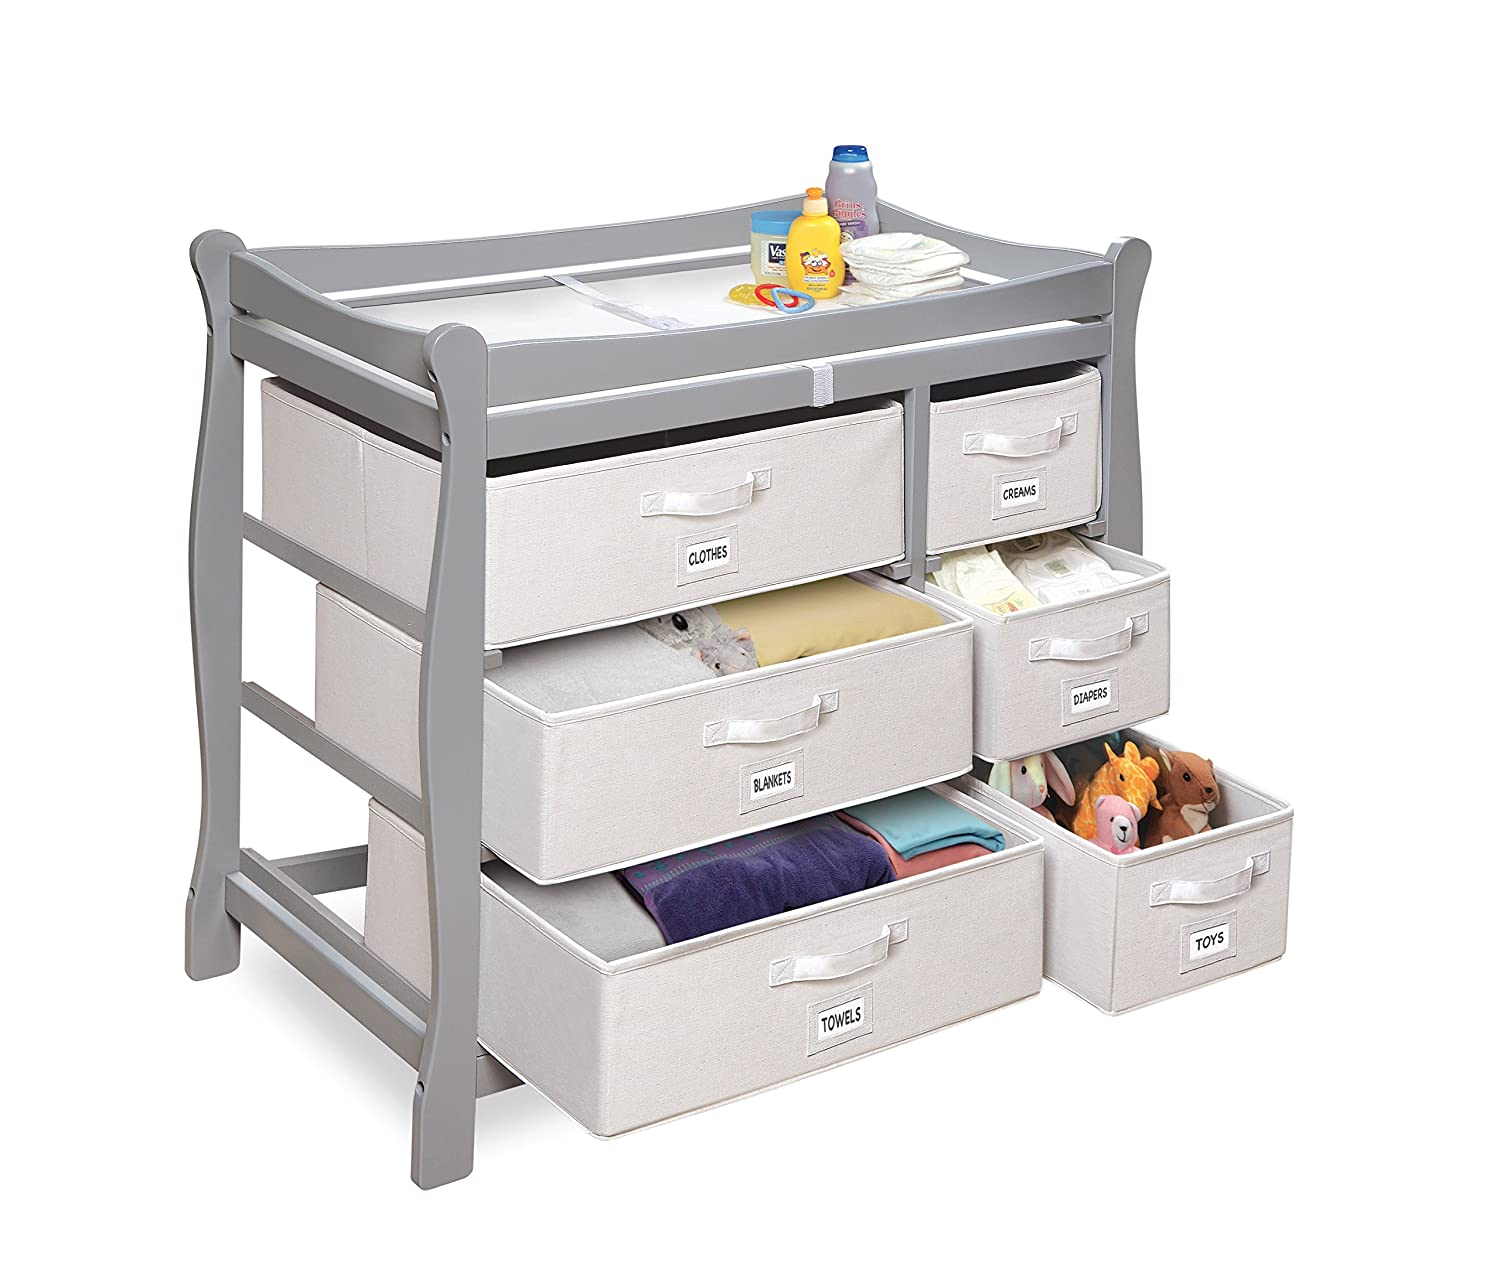 Marvelous Amazon.com : Badger Basket Sleigh Style Changing Table With Six Baskets,  Gray : Baby